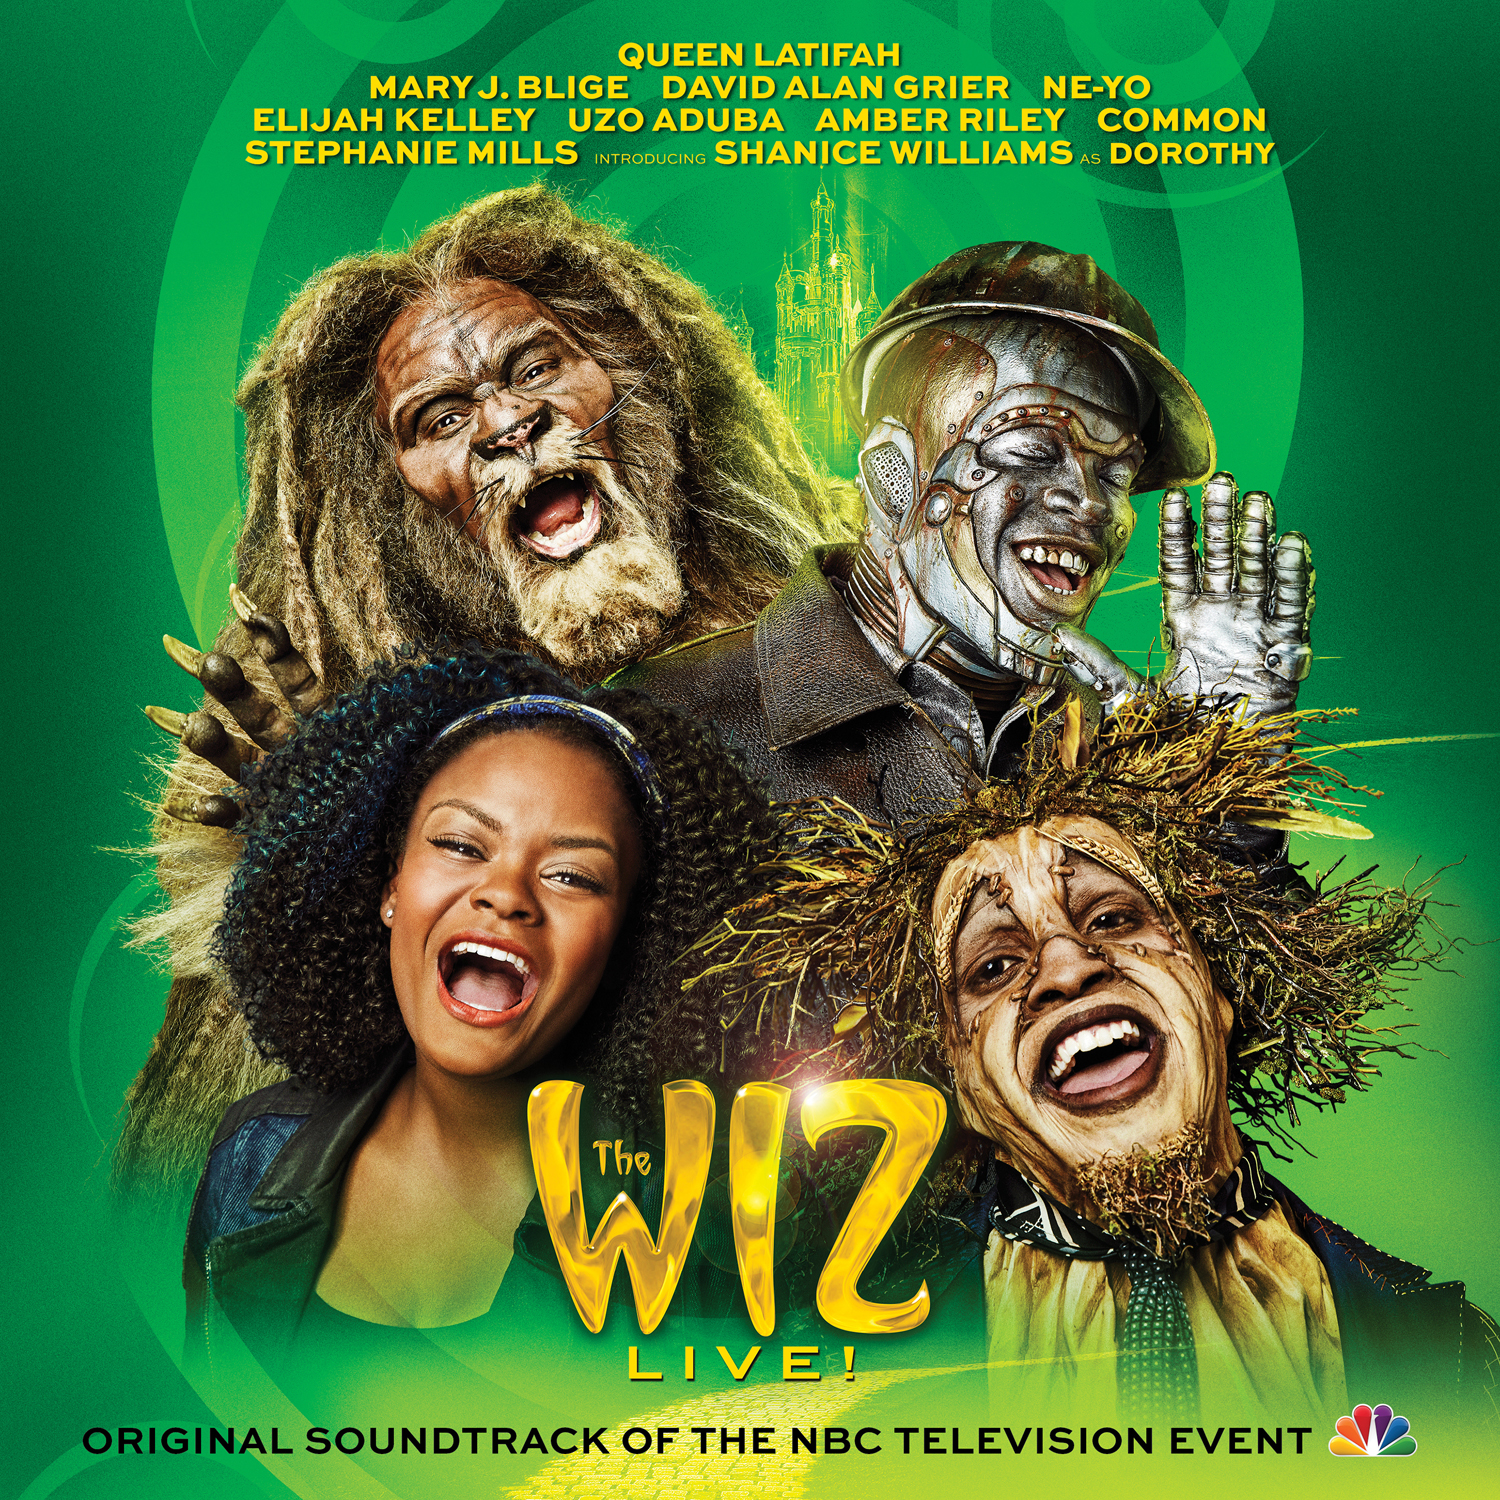 The Wiz LIVE! Original Soundtrack of the NBC Television Event | Preorder Today